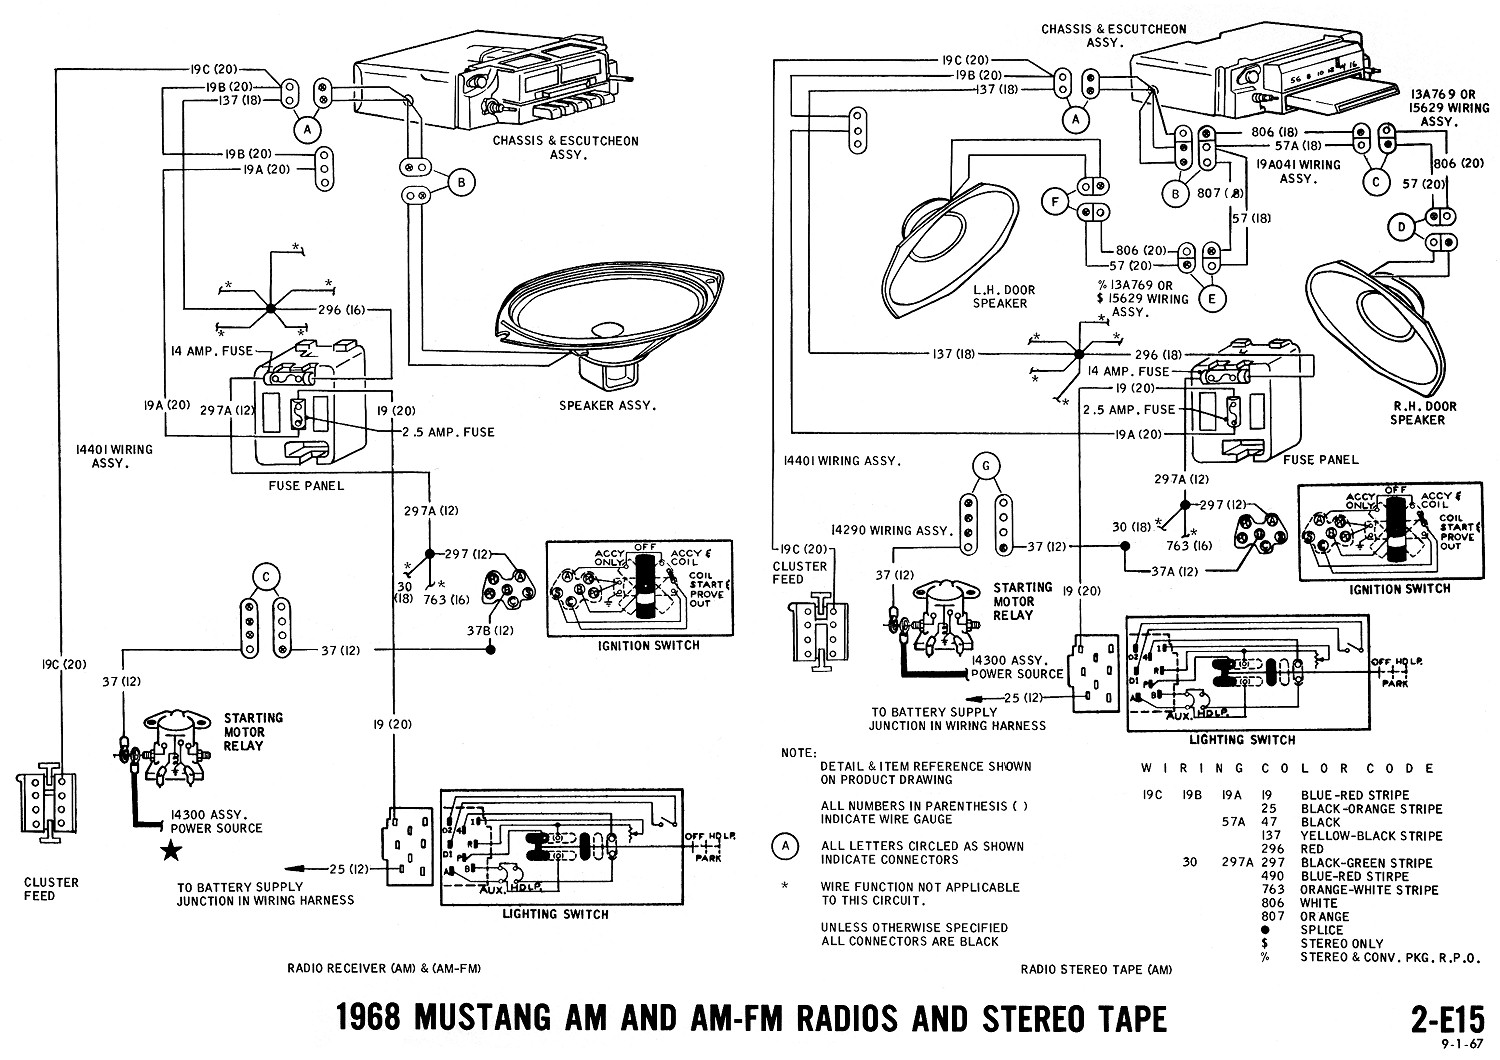 1972 Mustang Tachometer Wiring Schematic Diagram Will Be A Mg Midget For 1968 Ford Just Data Rh Ag Skiphire Co Uk Yamaha